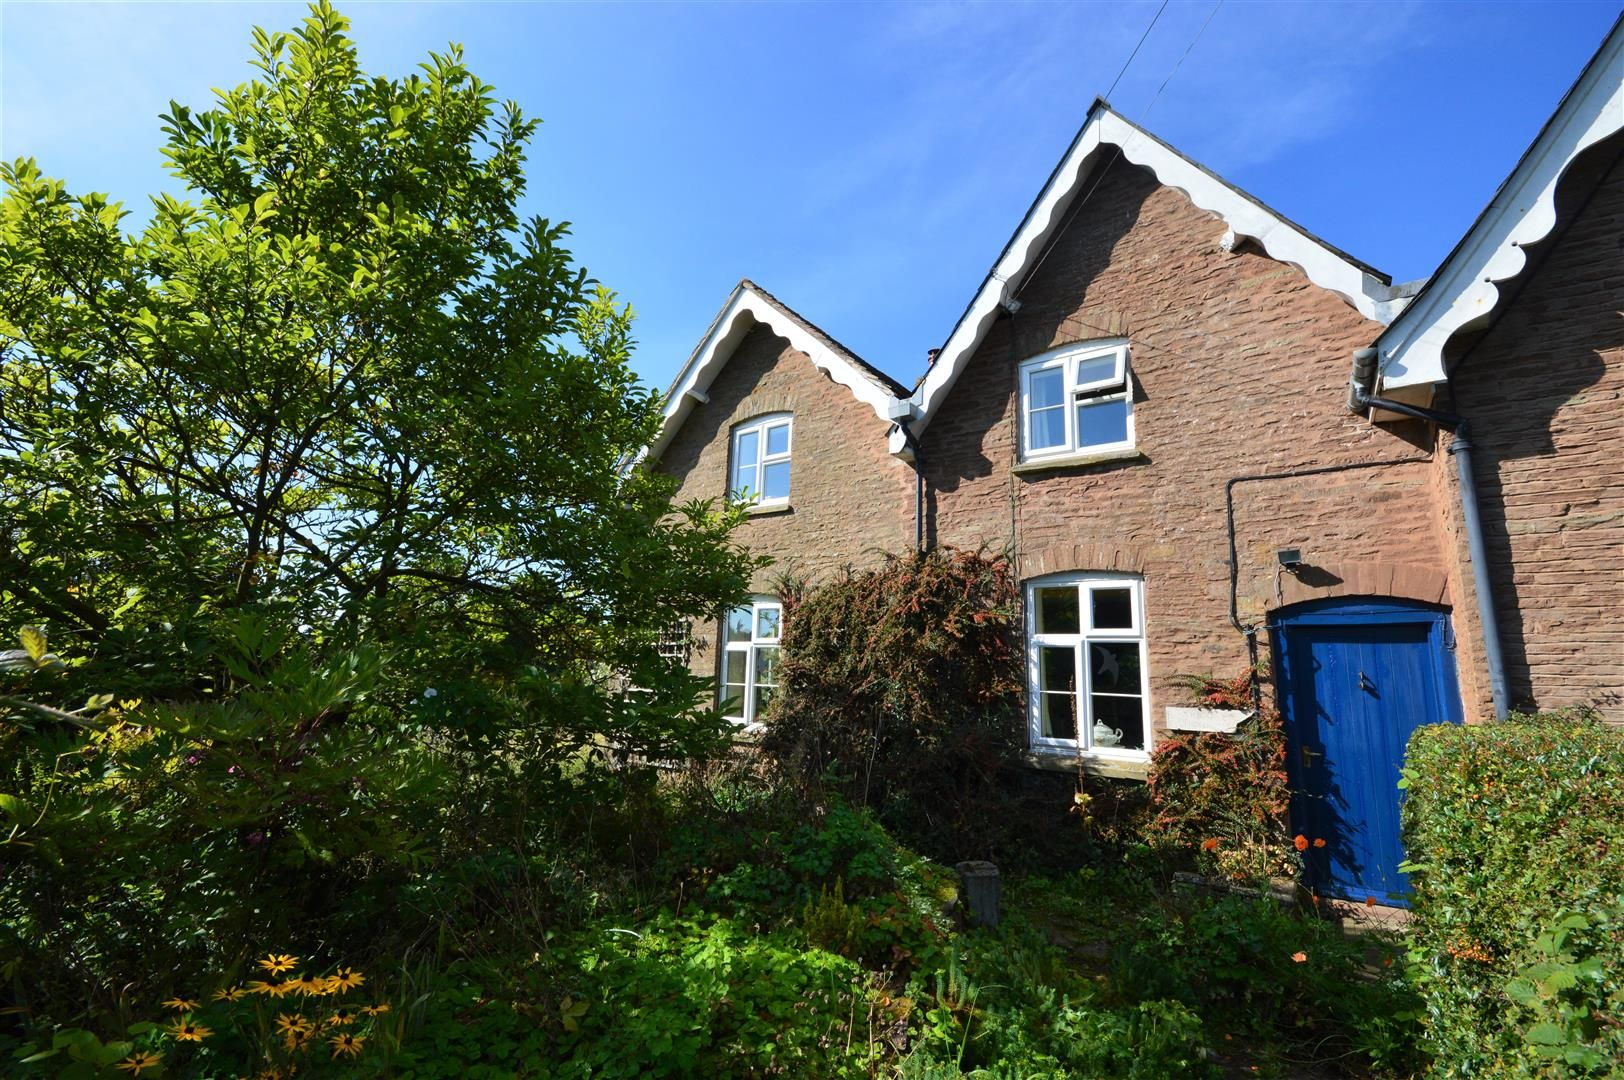 3 bed semi-detached for sale in Hatfield  - Property Image 18